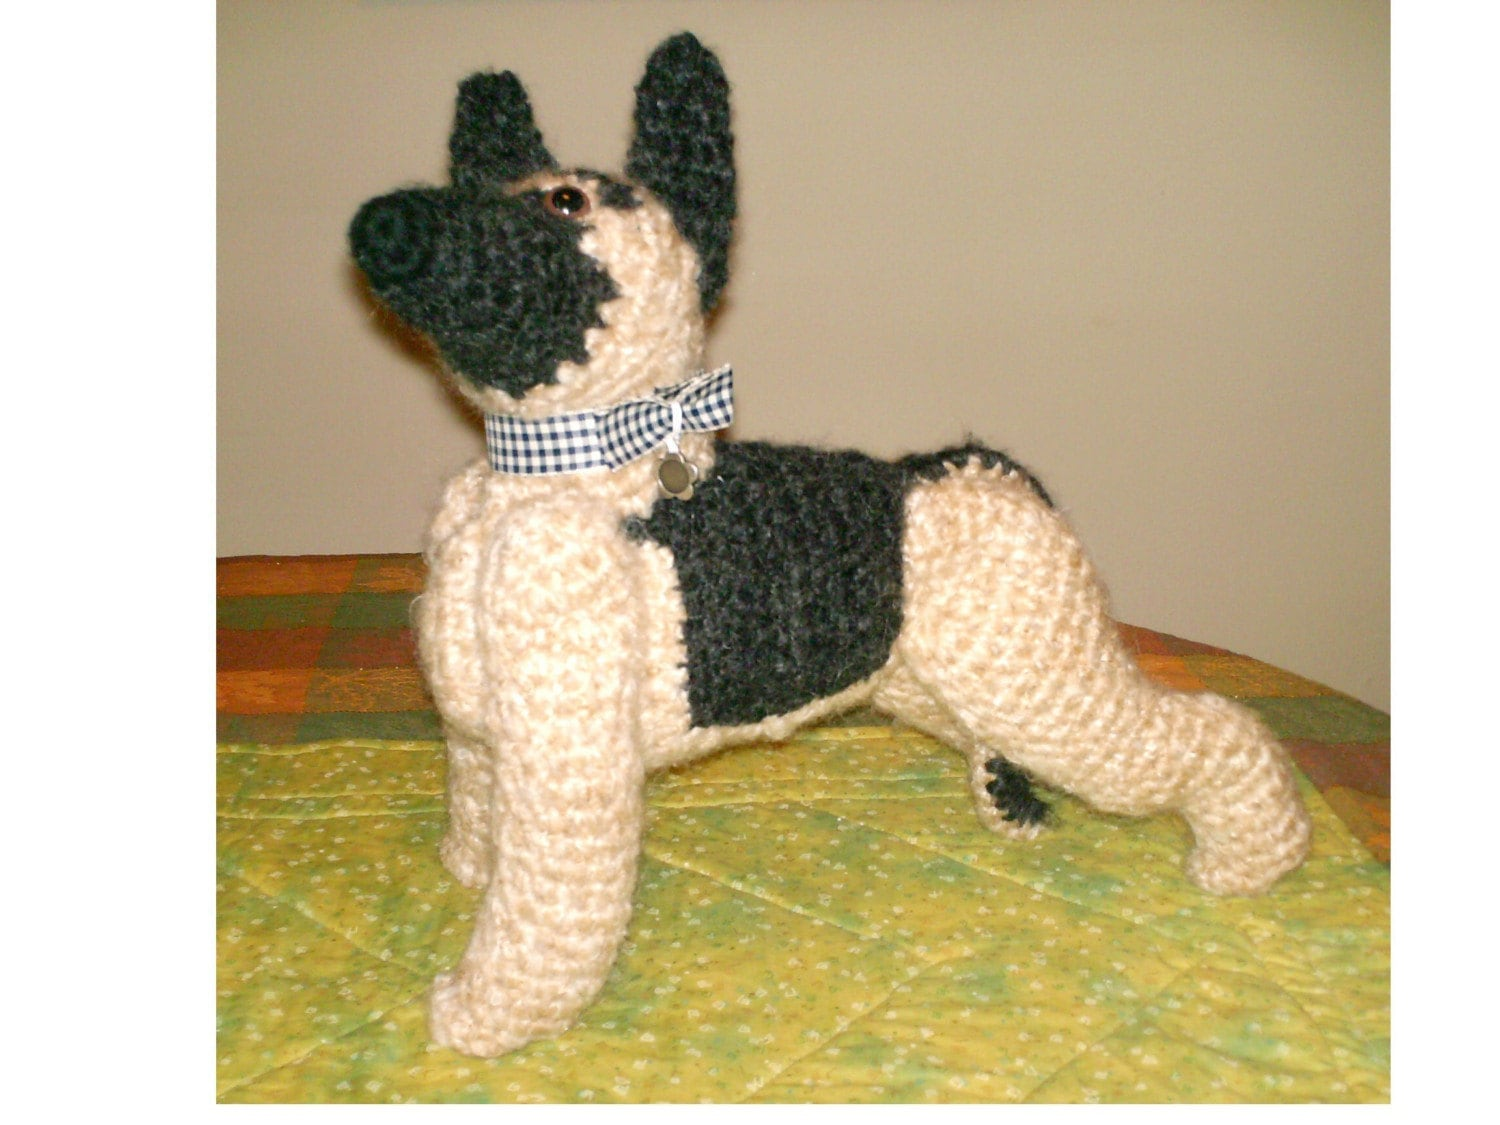 German Shepherd Tiny Crochet Miniature Dog Stuffed Animals |Crochet German Shepherd